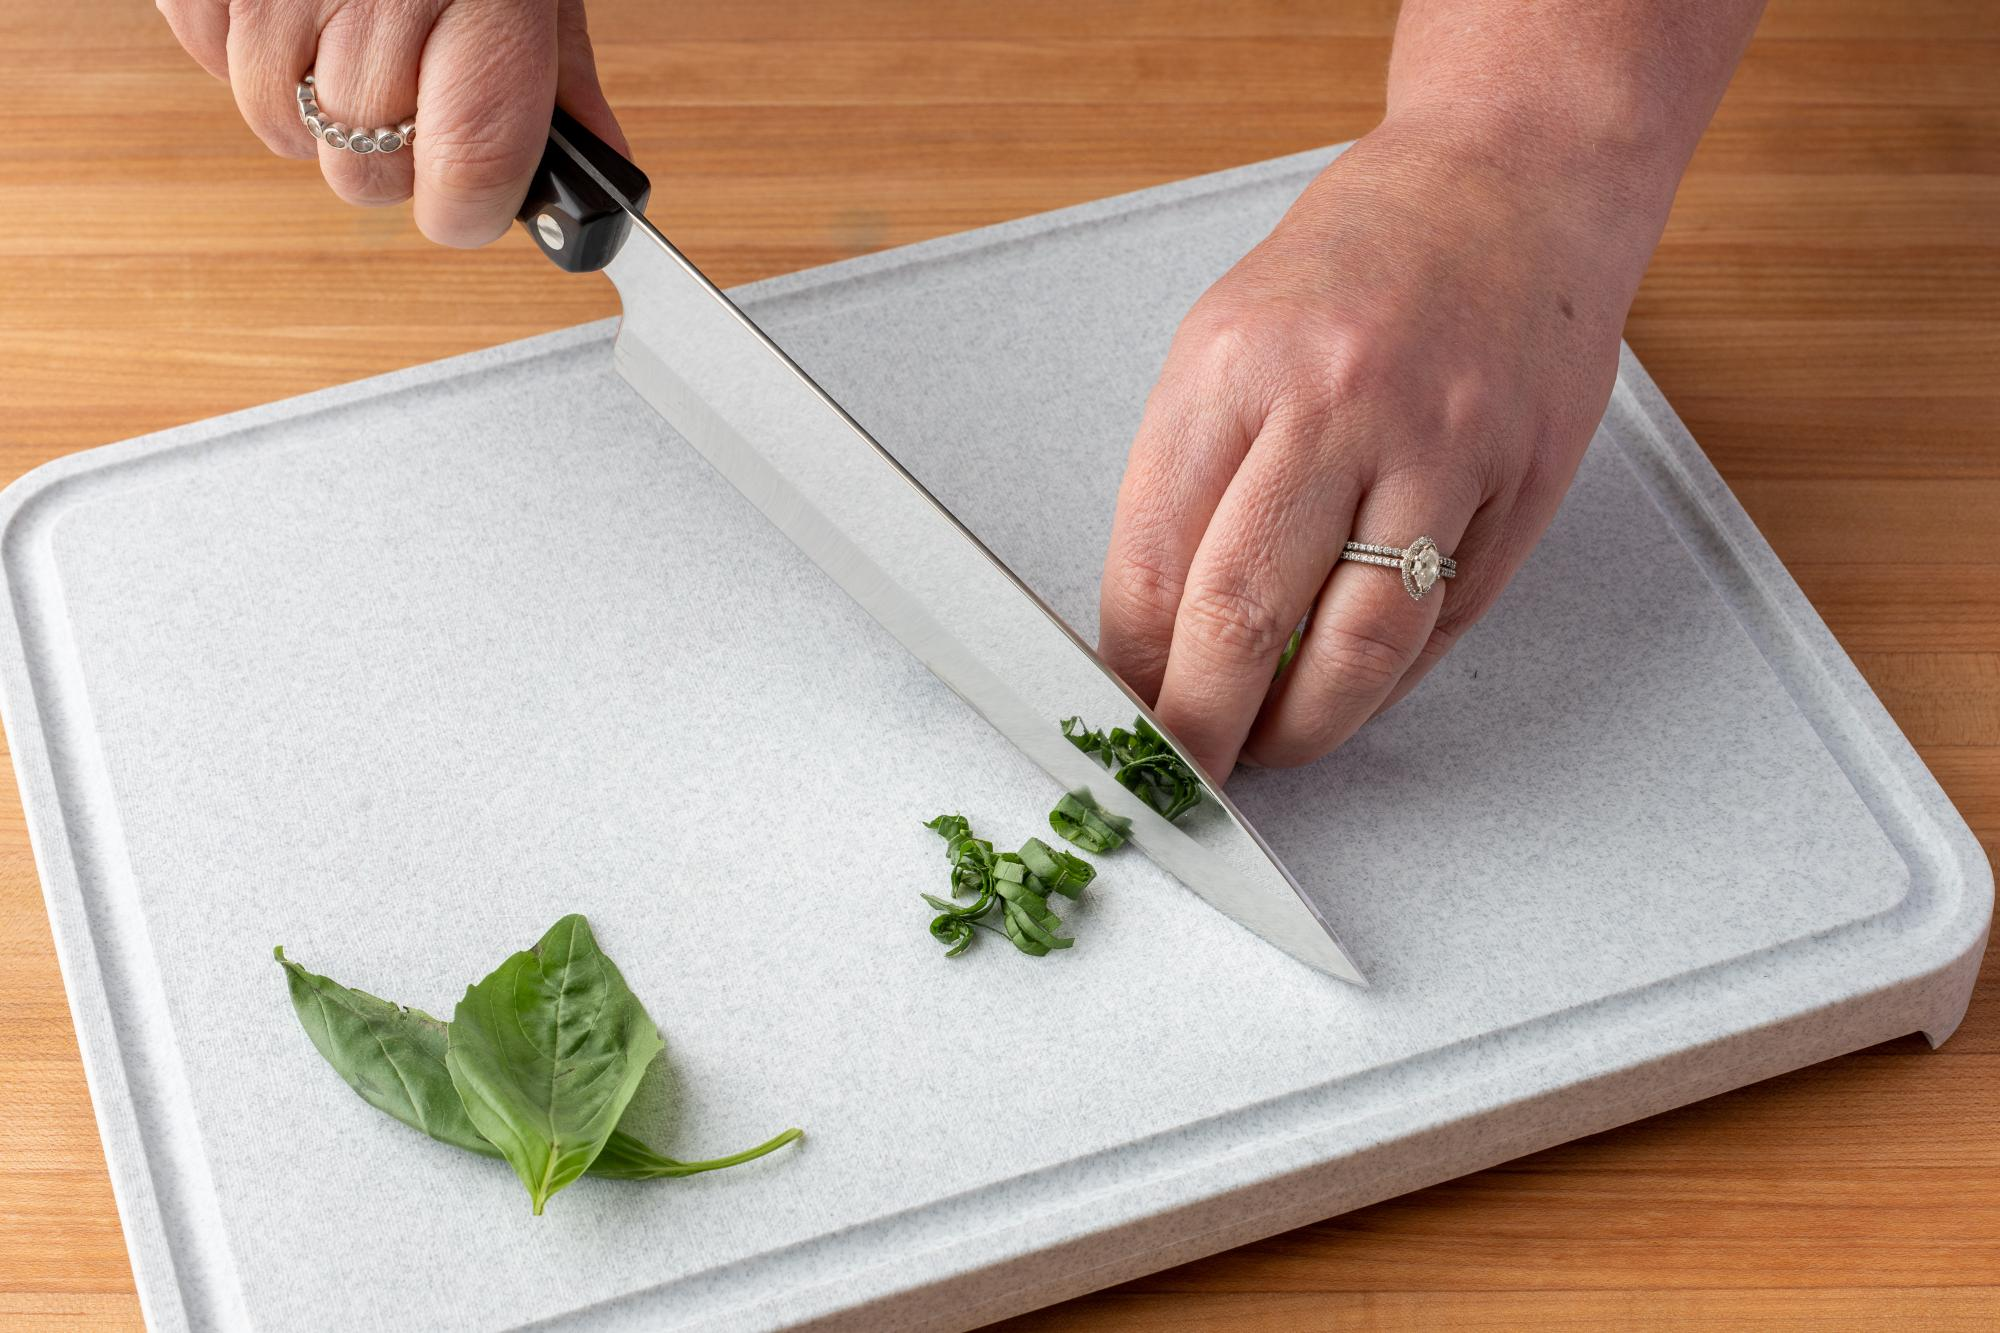 Chiffonade basil with a Petite Chef.